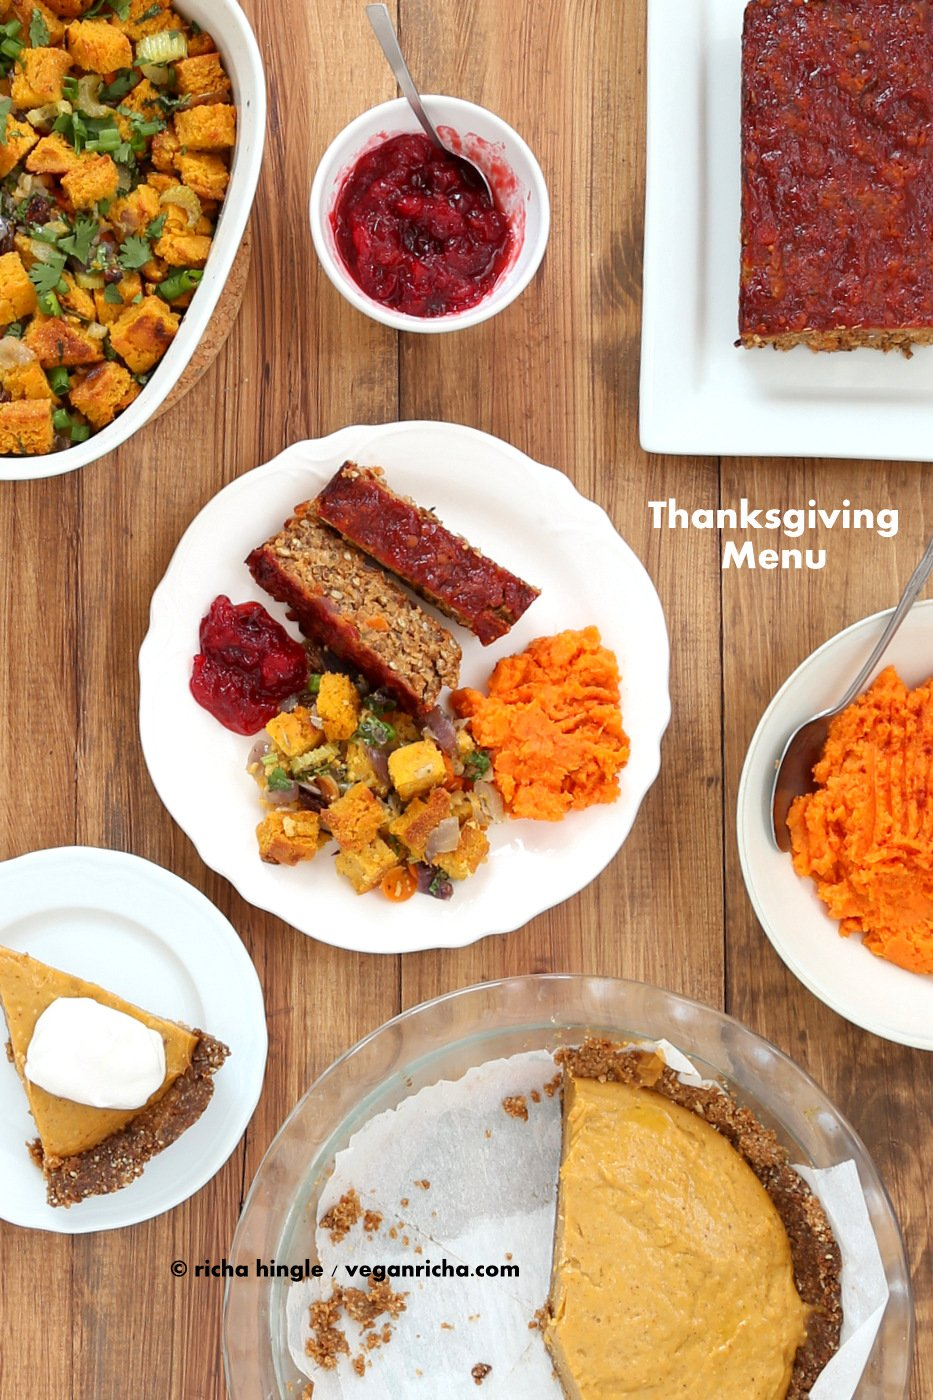 Vegan Thanksgiving Recipes 2014 | Vegan Richa